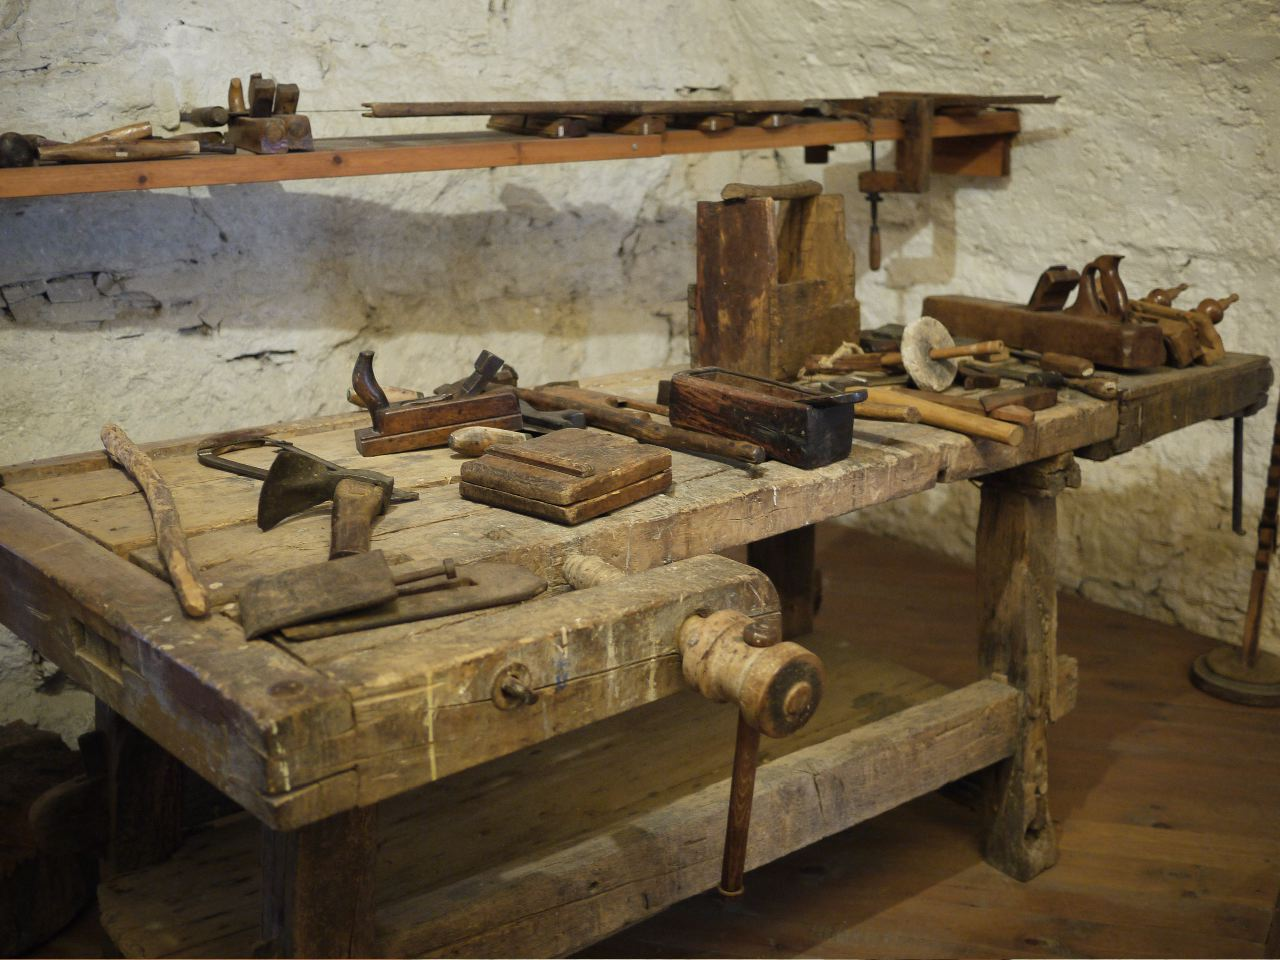 Old Woodworking Tools In The Castle